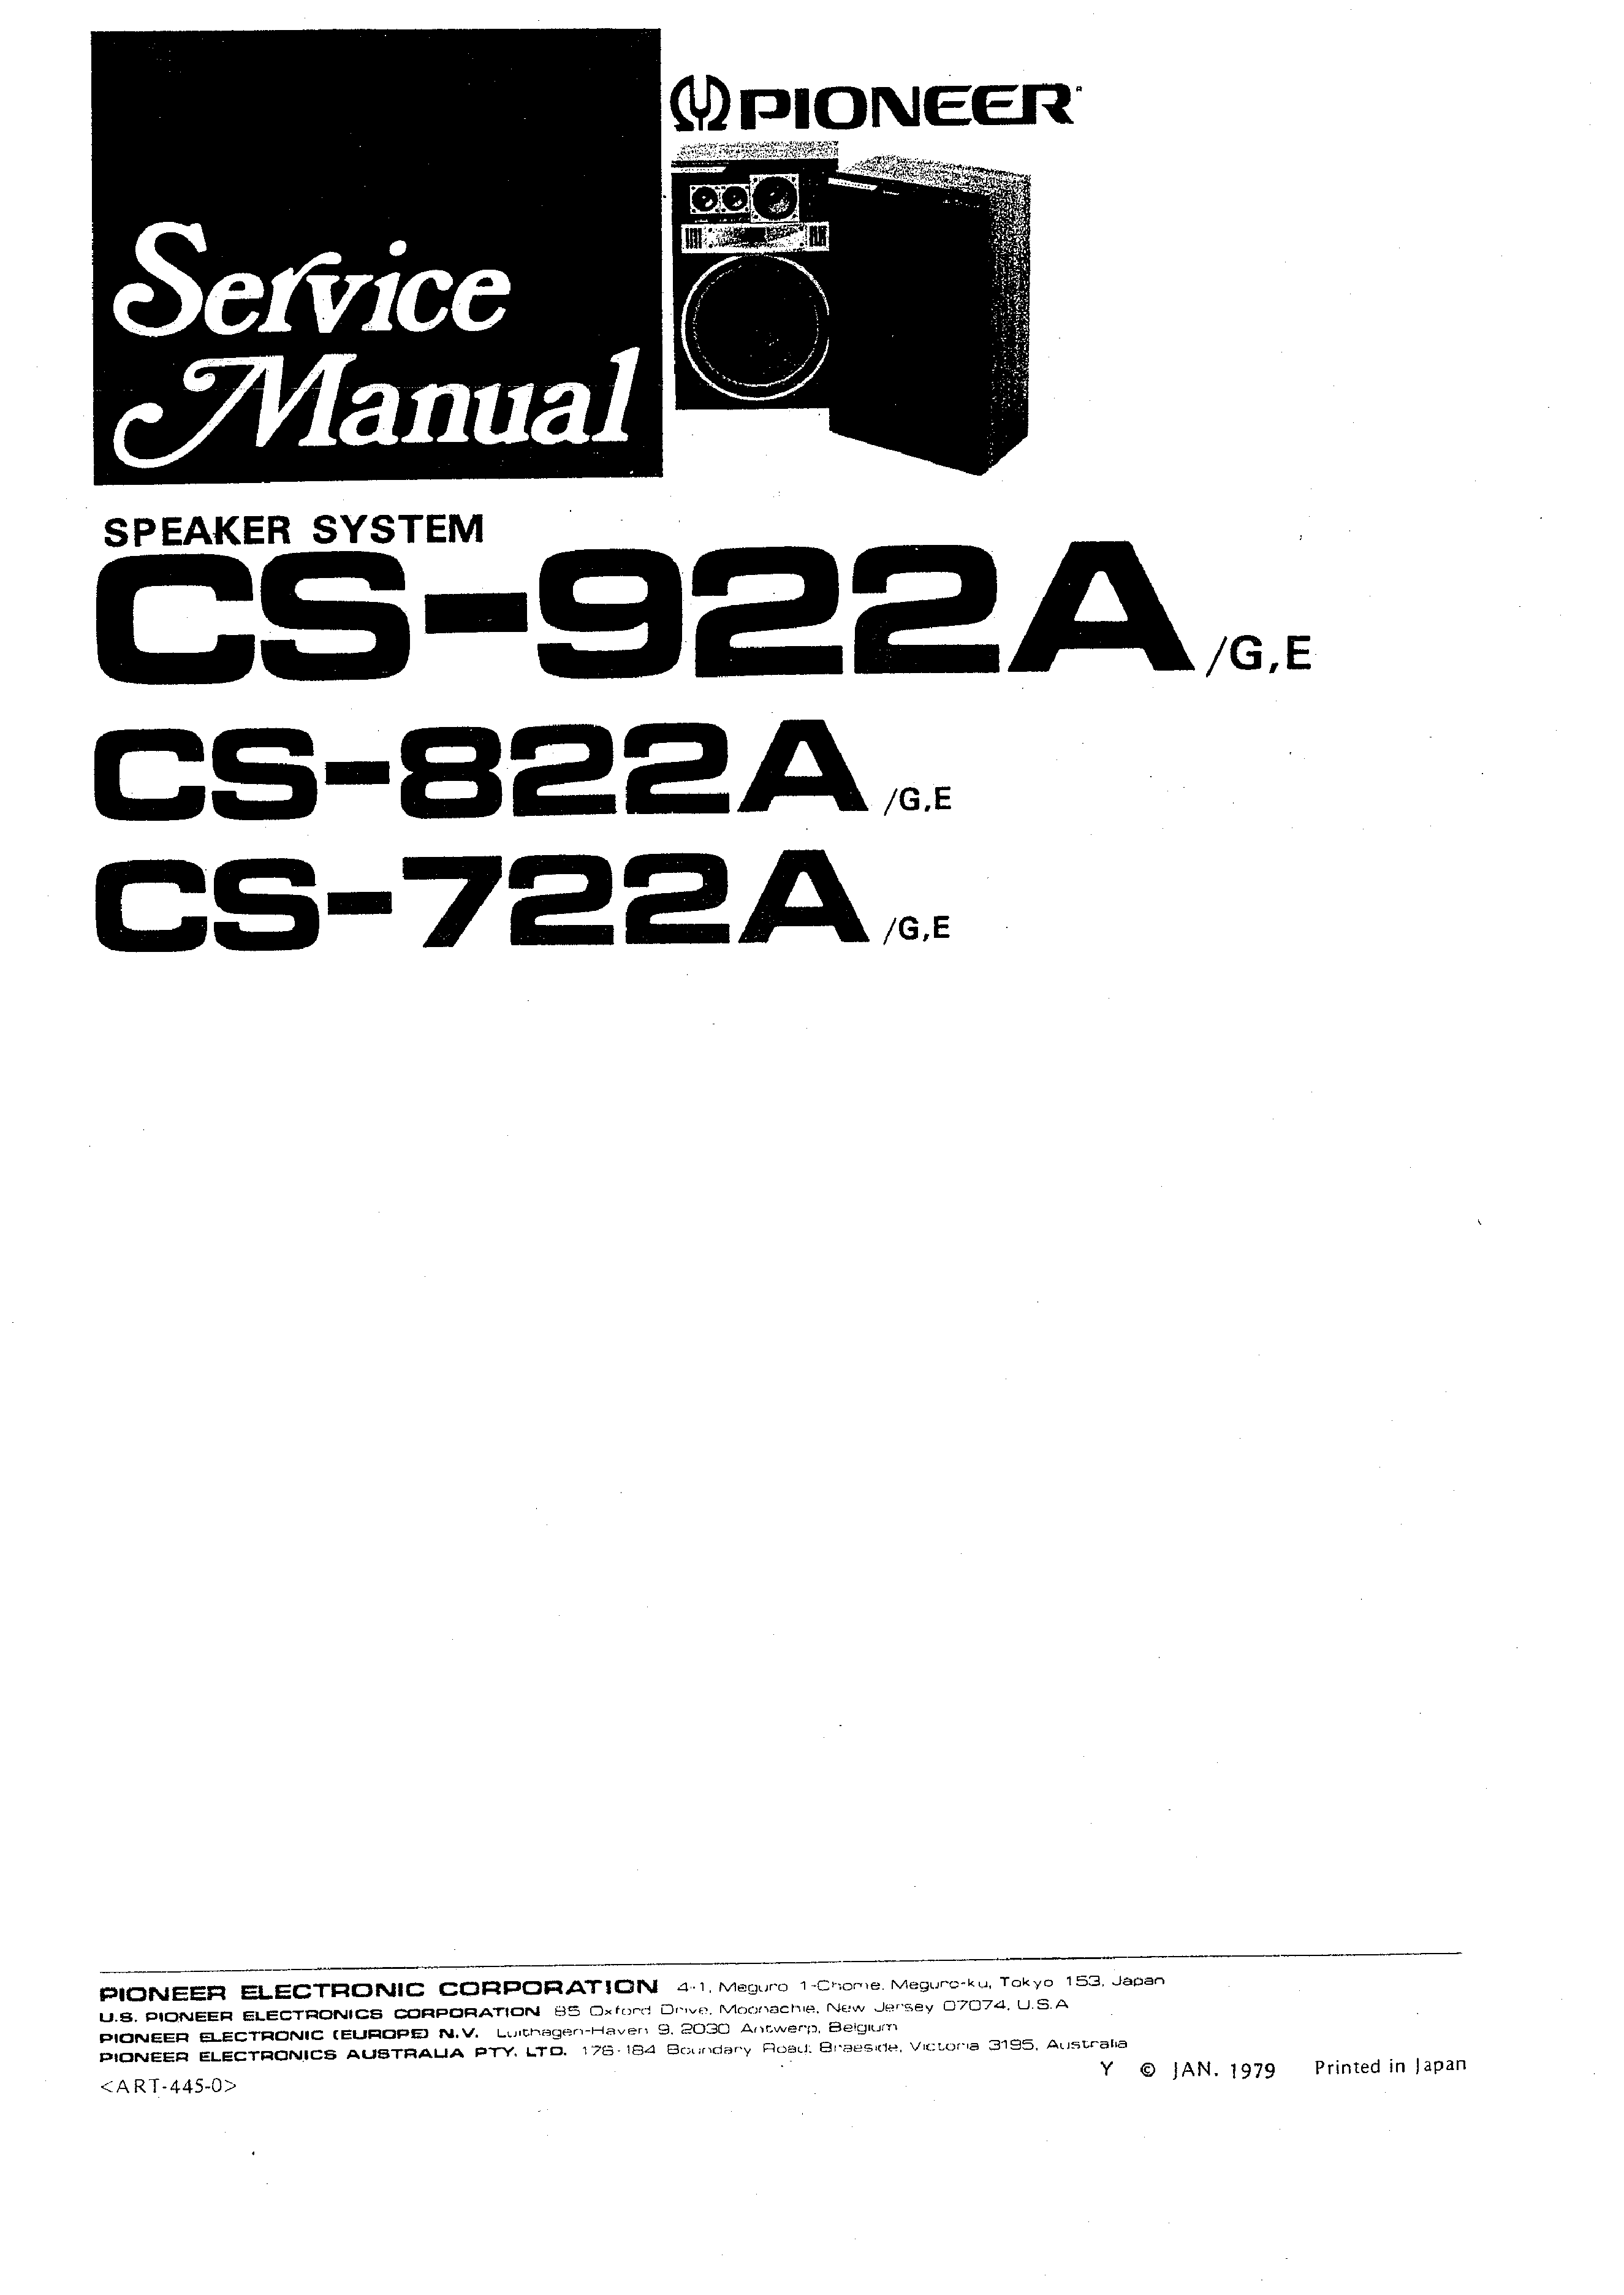 service manual for pioneer cs-922a